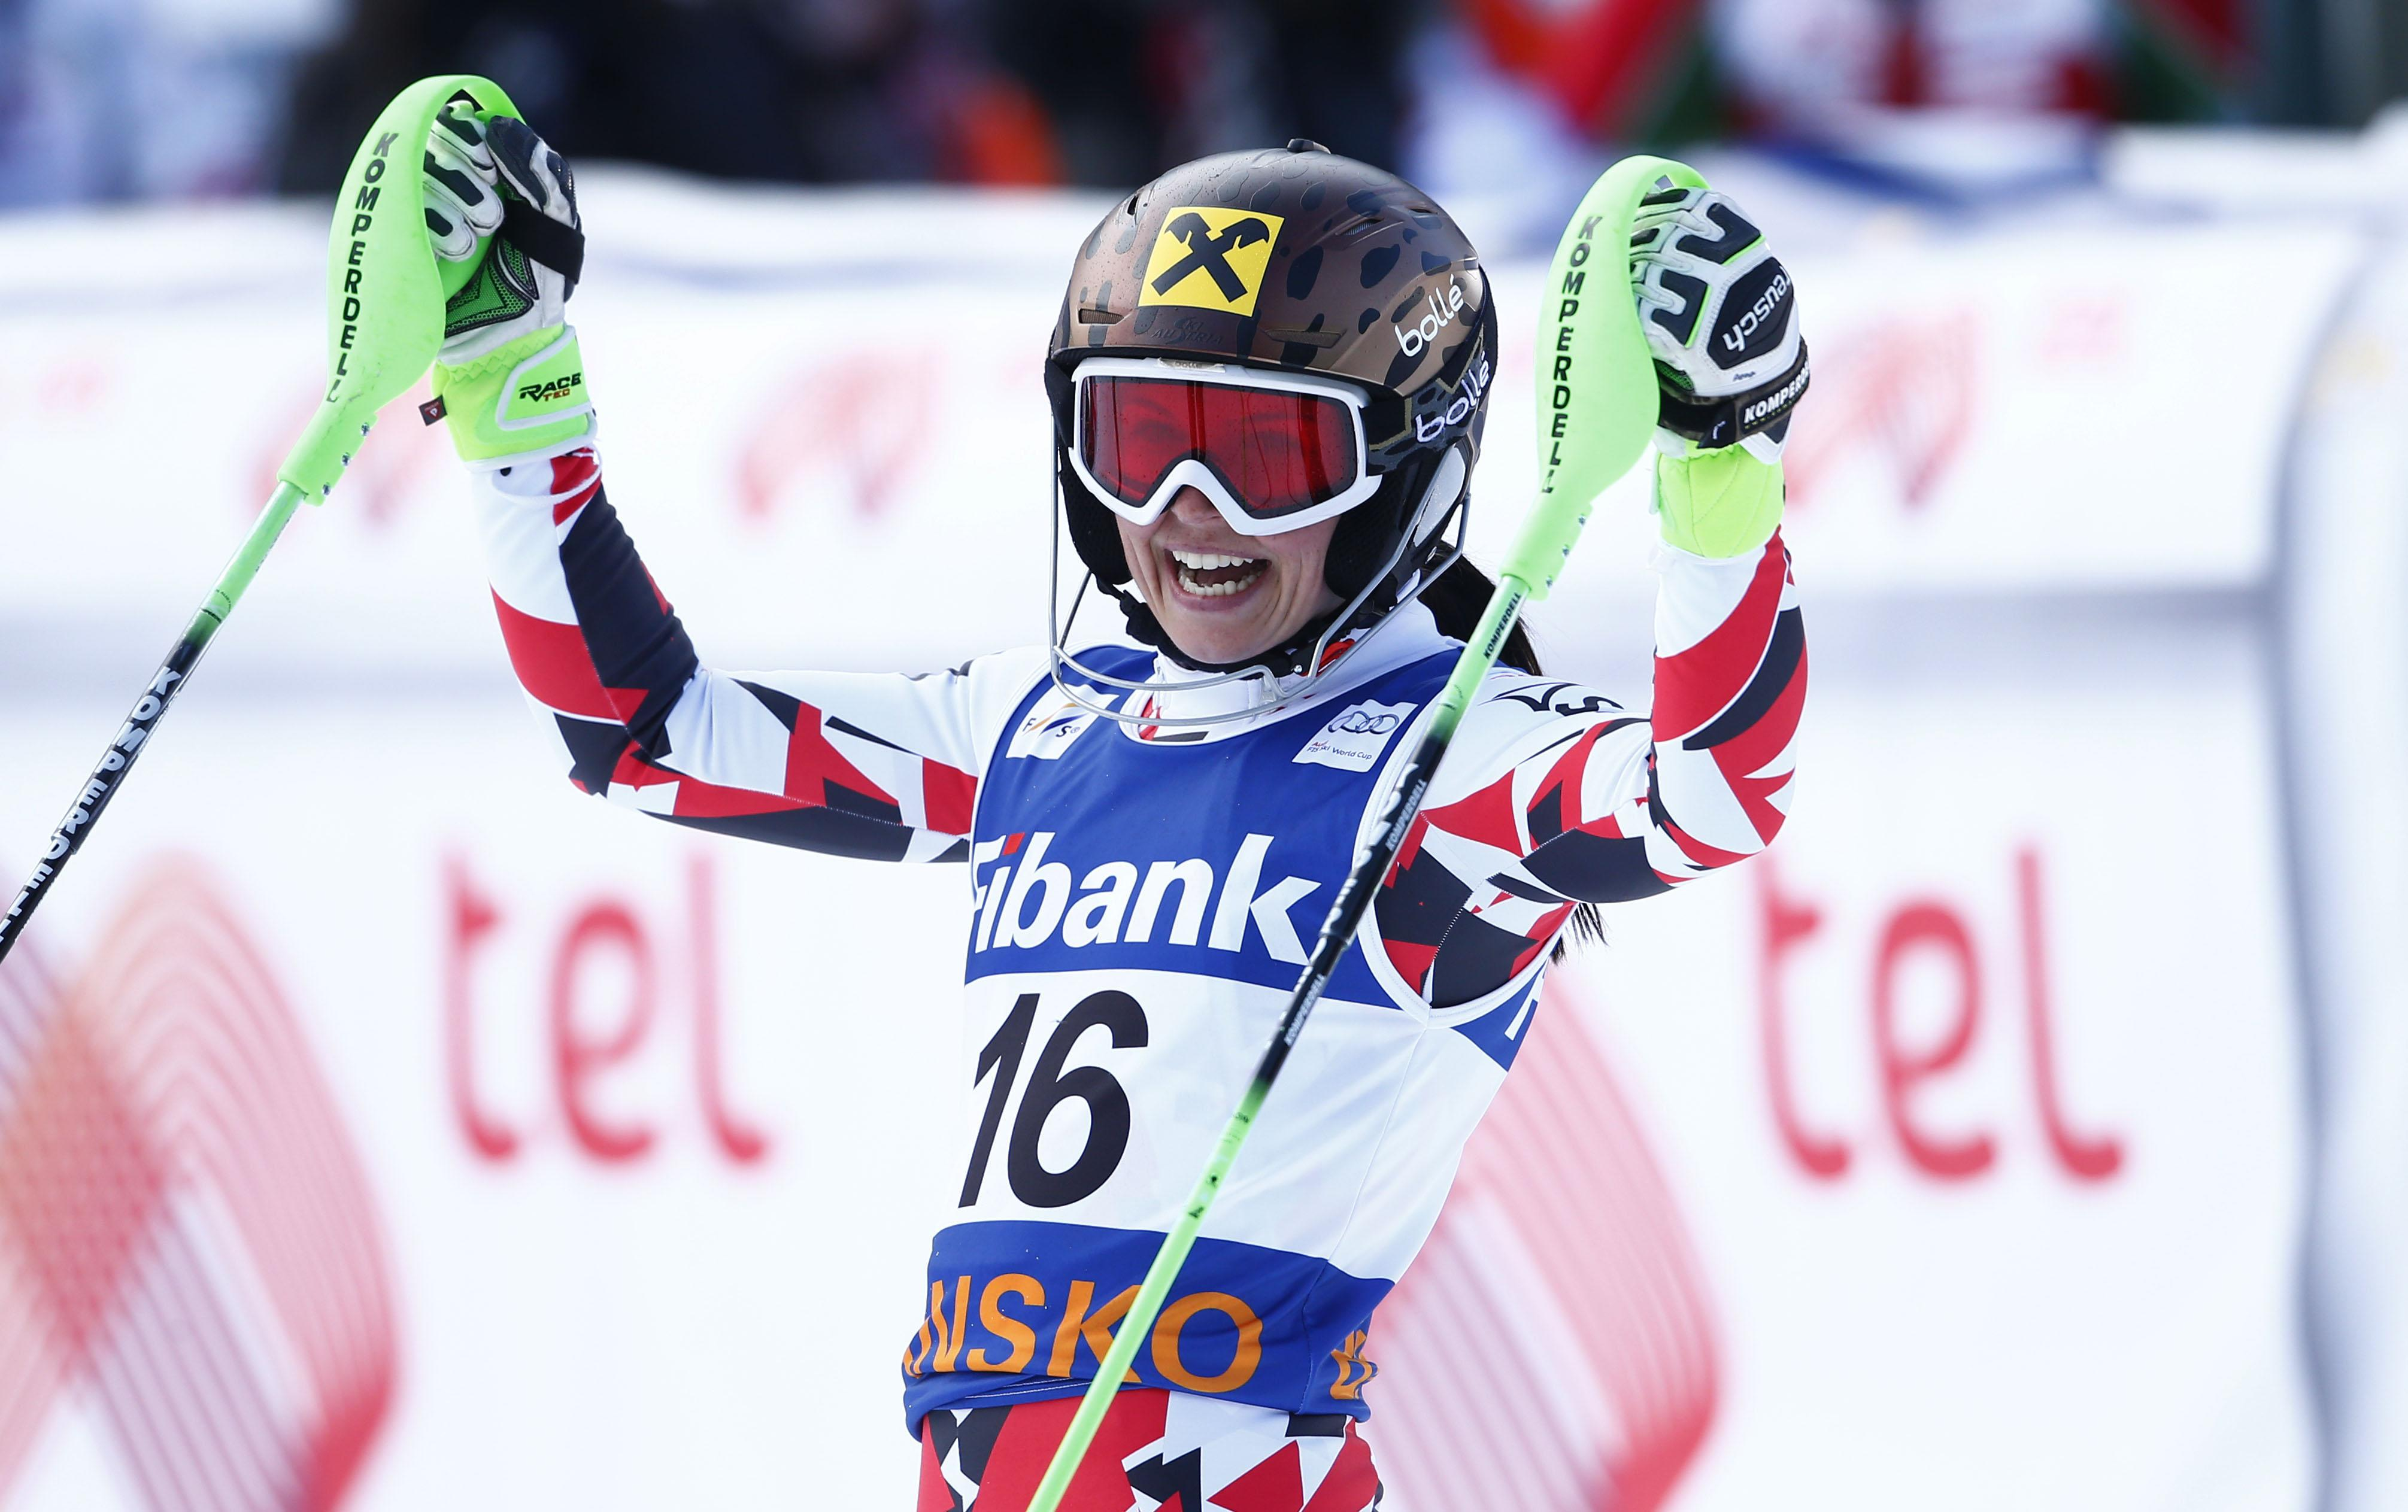 Fenninger takes Vonn's super-G lead with 2 wins in Bulgaria